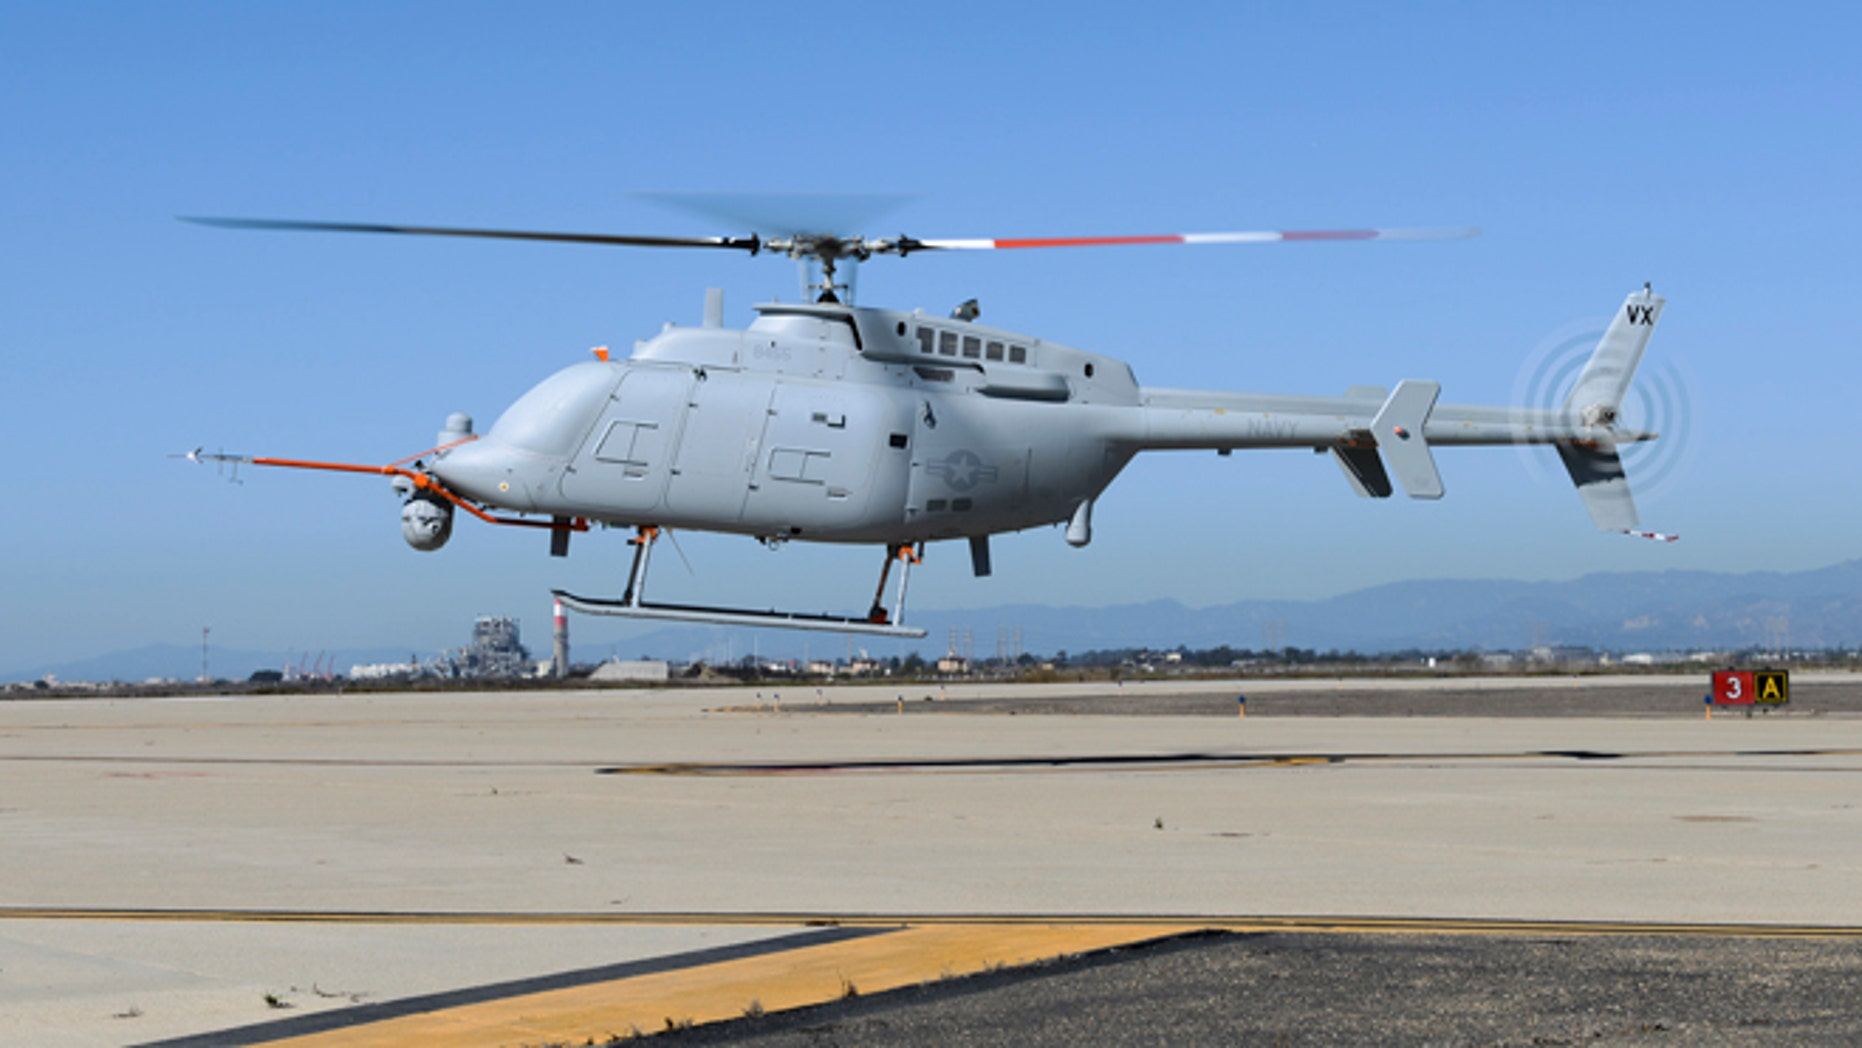 Oct. 31, 2013: An MQ-8C Fire Scout unmanned aerial vehicle takes off from Naval Base Ventura County at Point Mugu. The Navy's newest variant of the Fire Scout unmanned helicopter completed its first day of flying Oct. 31 with two flights reaching 500 feet altitude.